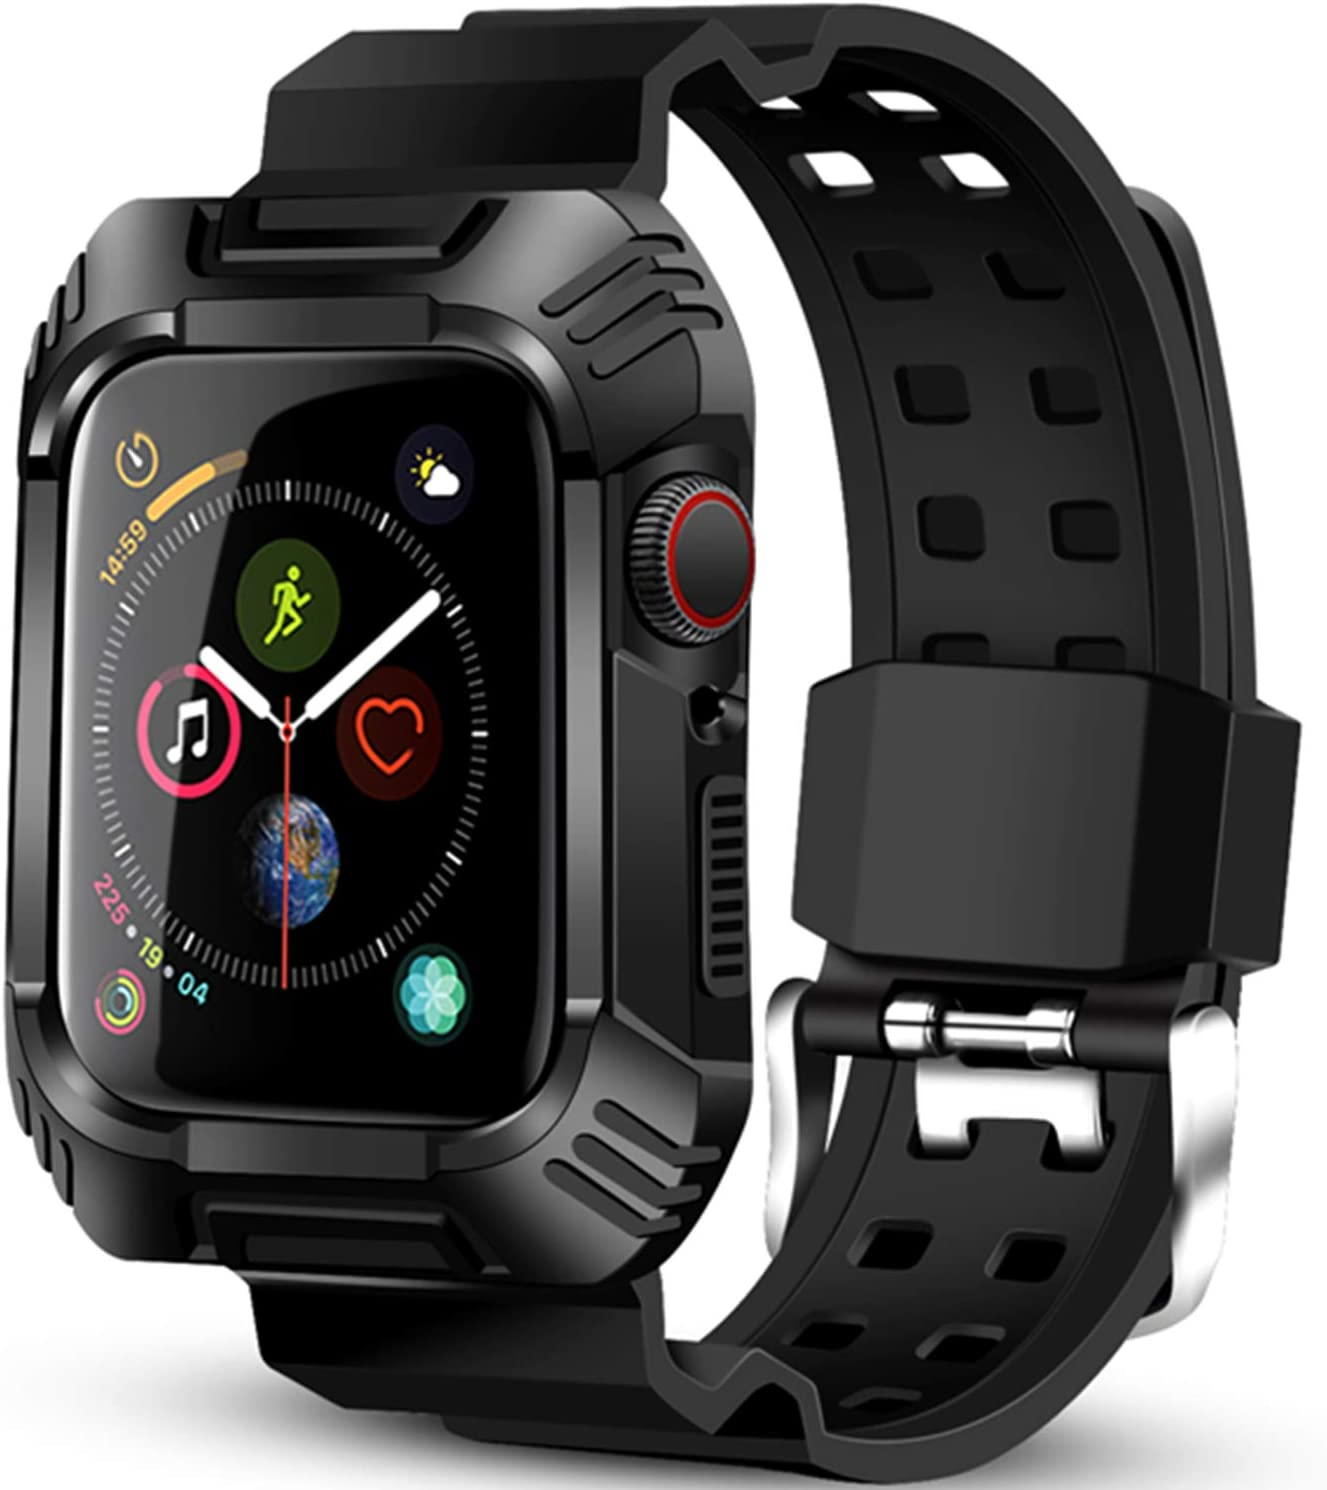 BeeFly Compatible with Apple Watch Band 40mm Men,Case for 40mm Apple Watch Series 6 / 5/4 Protective Armor Rugged Case with Band for 40 mm Apple Watch Series 6 /Series 5/Series 4 for Sport (Black)